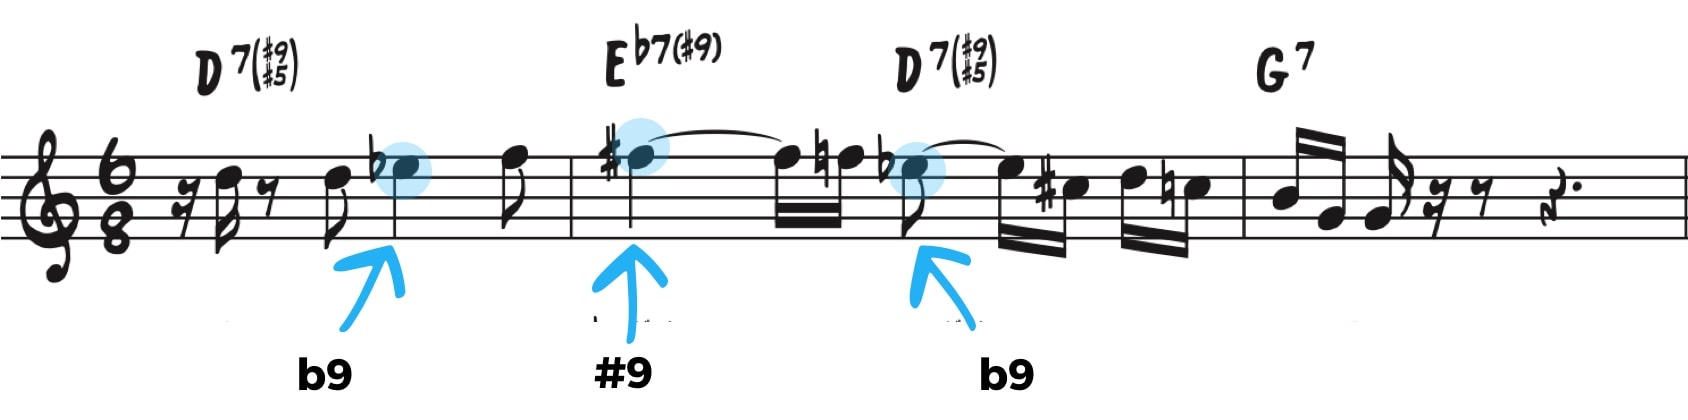 Altered Dominant Chords in All Blues